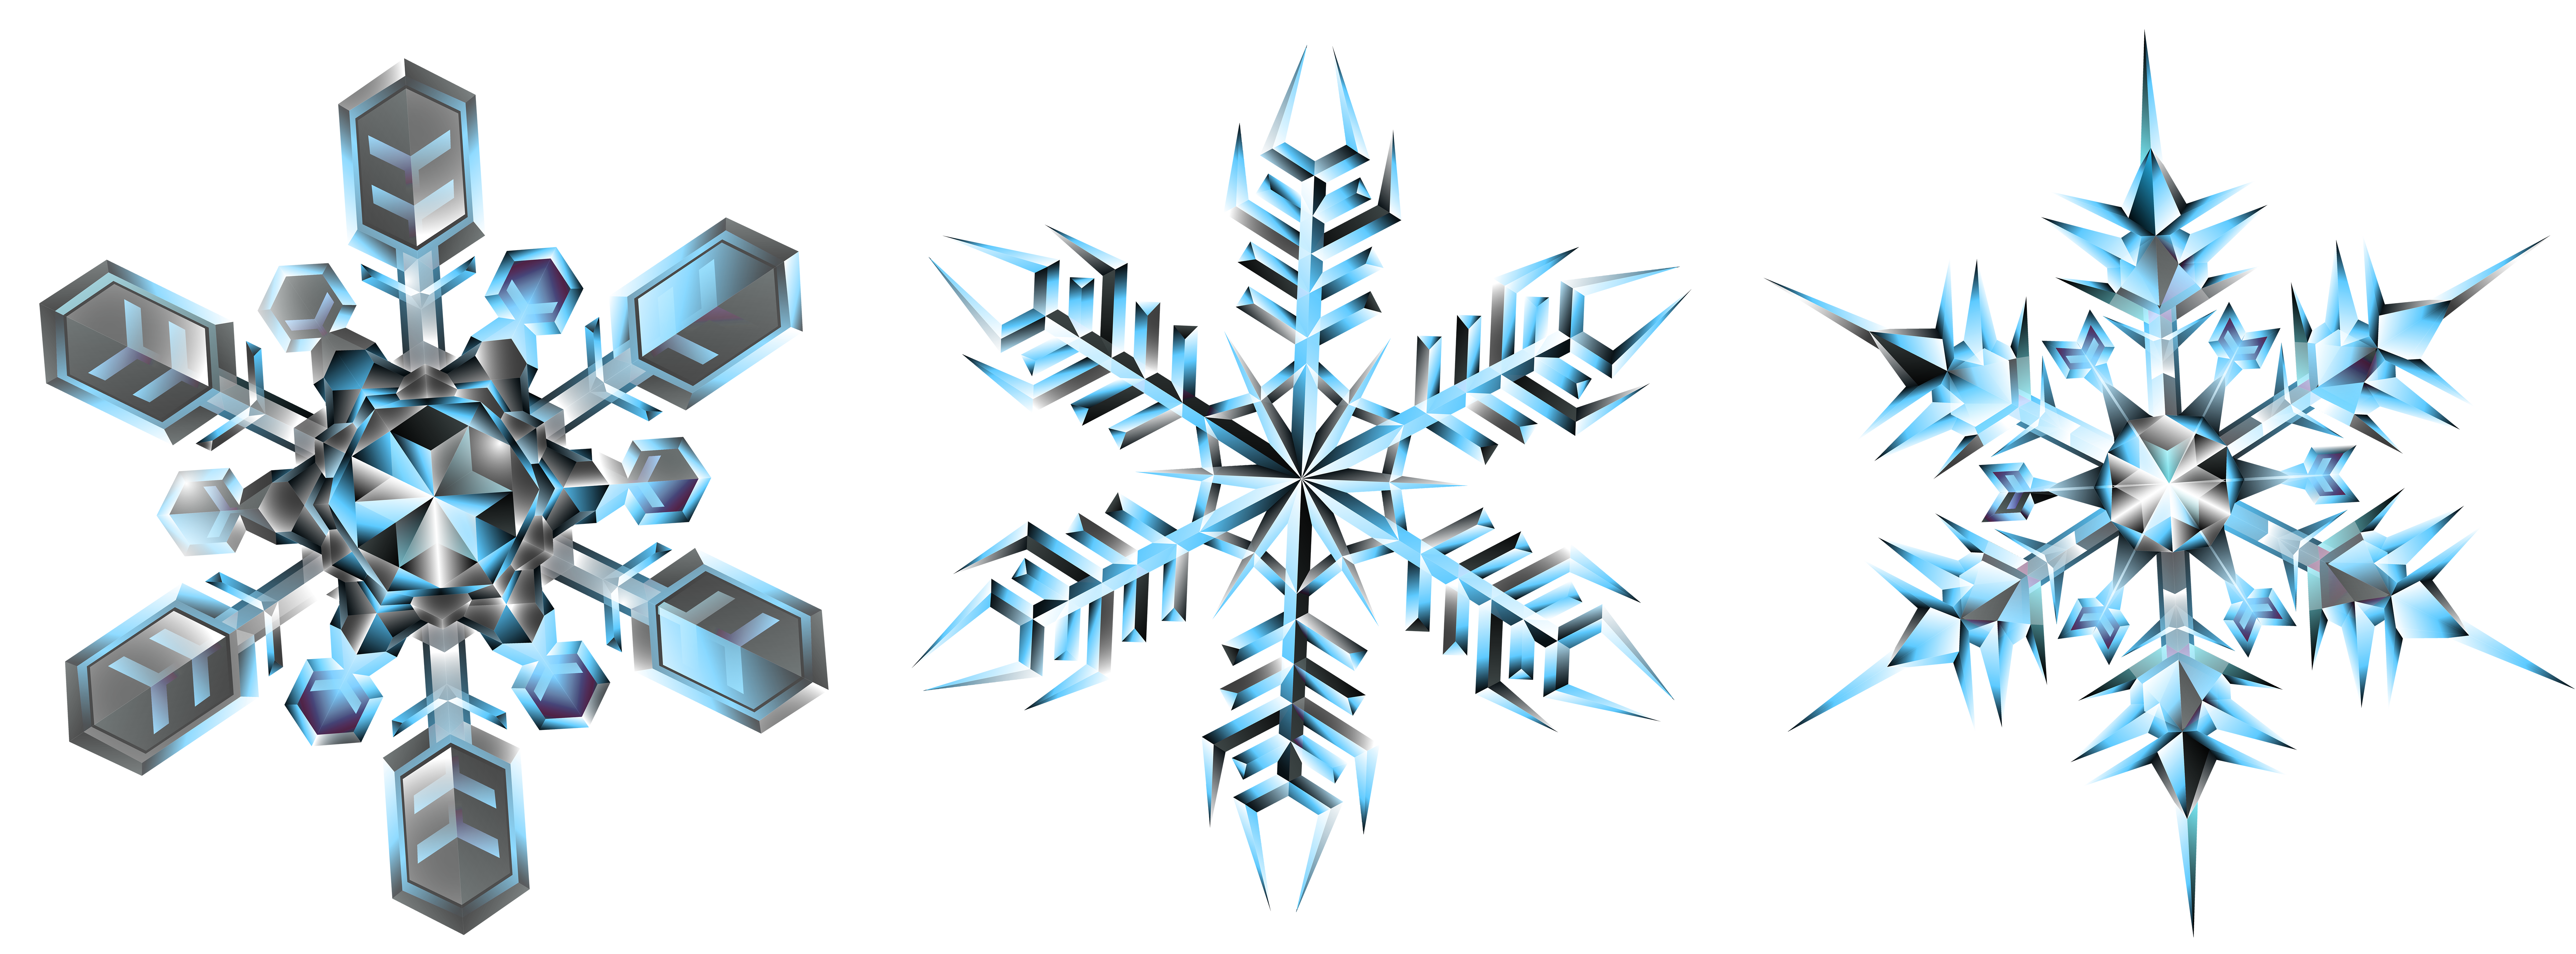 Clipart snowflake transparent royalty free library Crystal Snowflakes Transparent PNG Clip Art Image | Gallery ... royalty free library